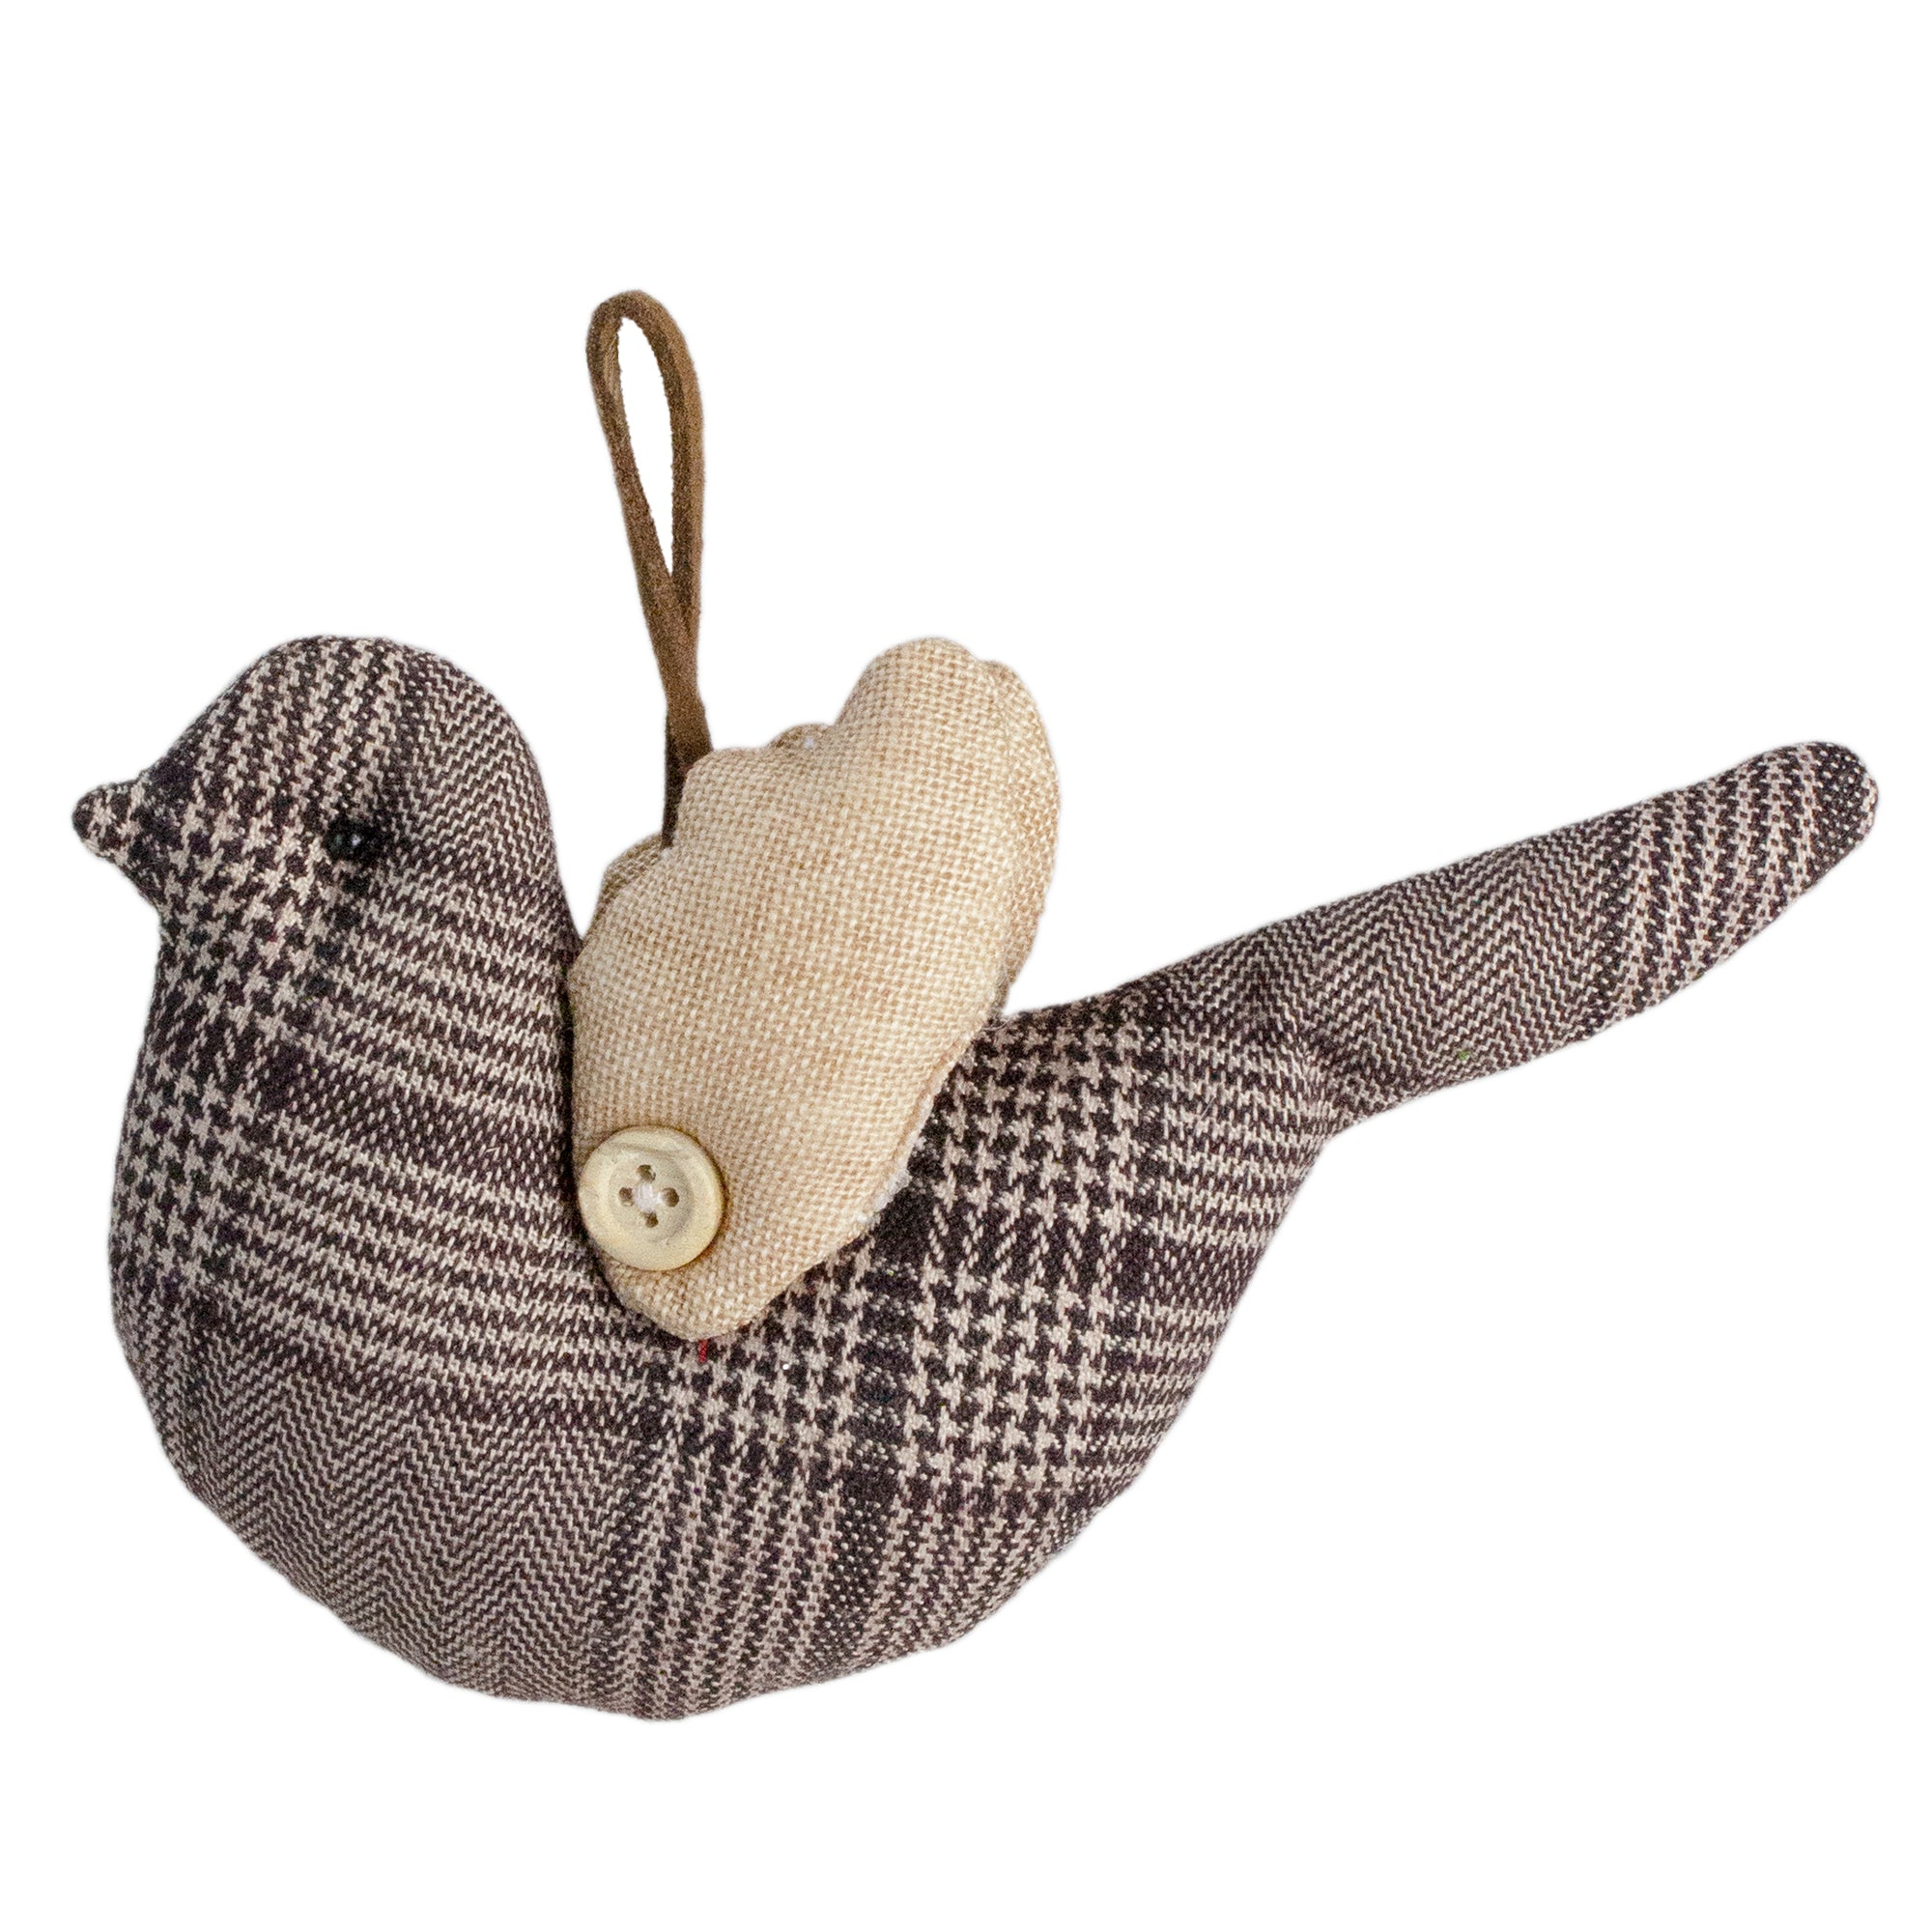 8 Brown And Beige Plaid Bird With Wings Christmas Ornament Northlight Seasonal